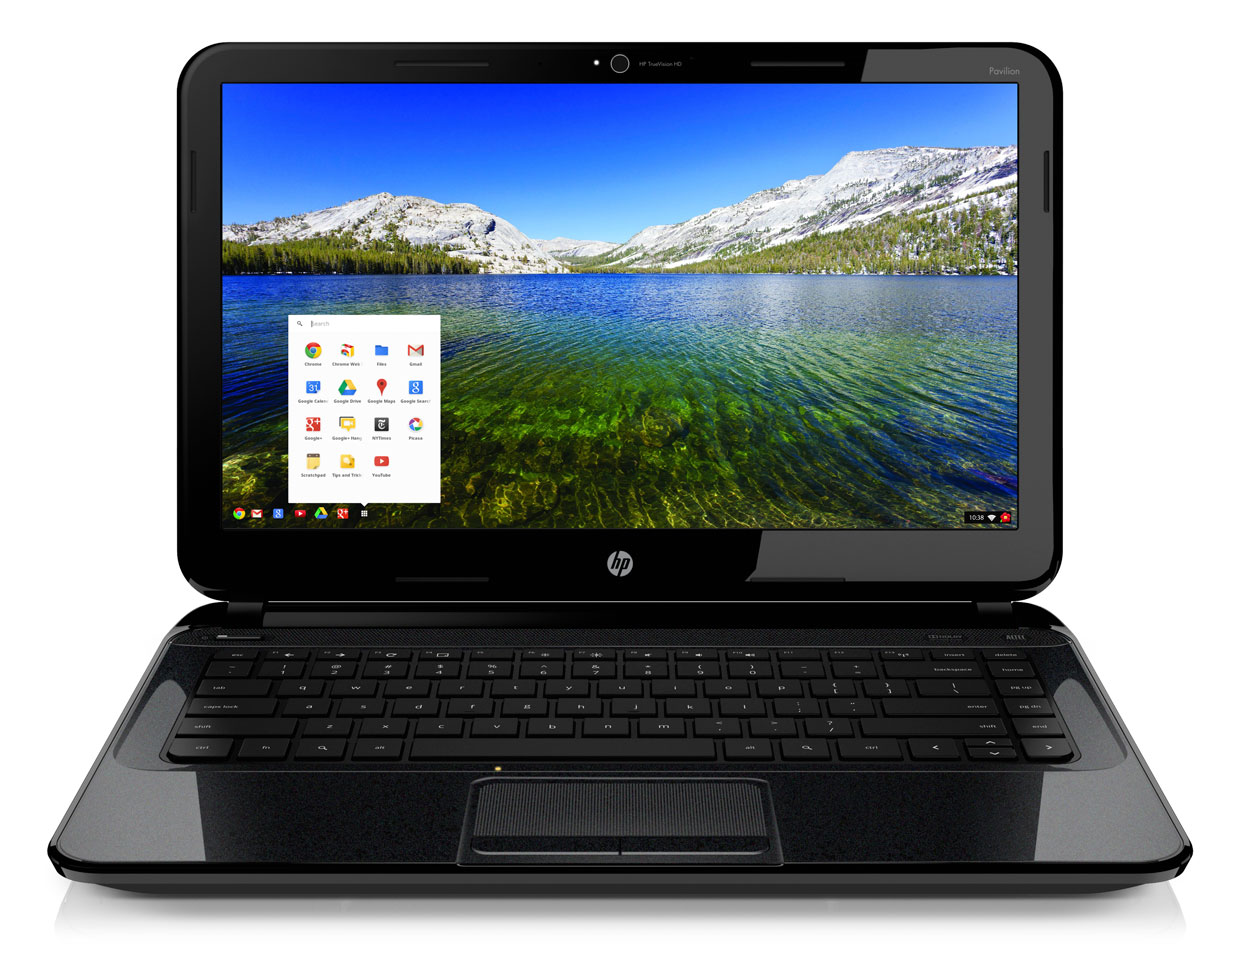 HP's Pavilion 14 Chromebook